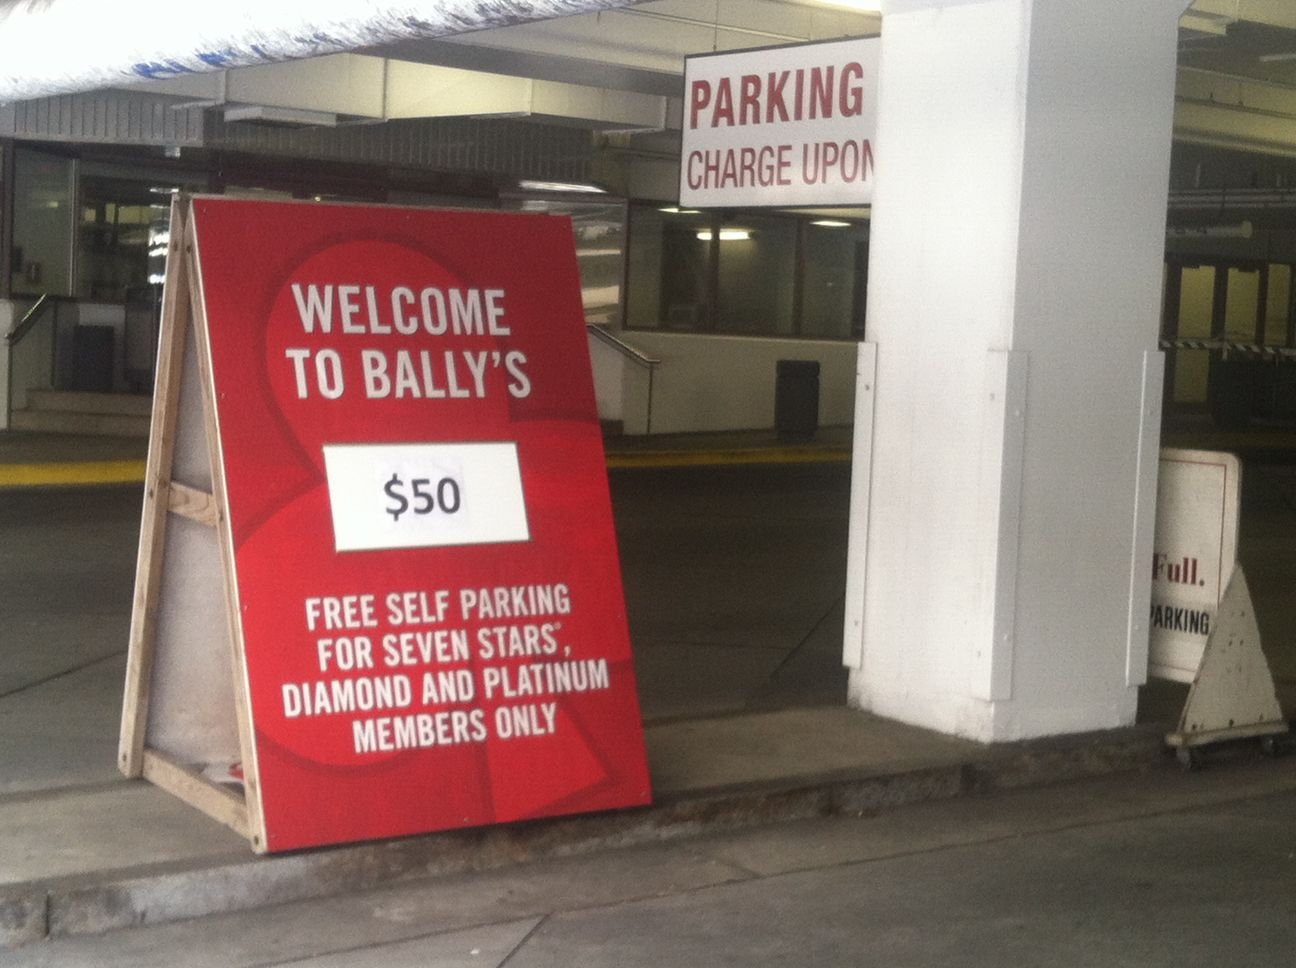 Ballys casino parking casino milwakee